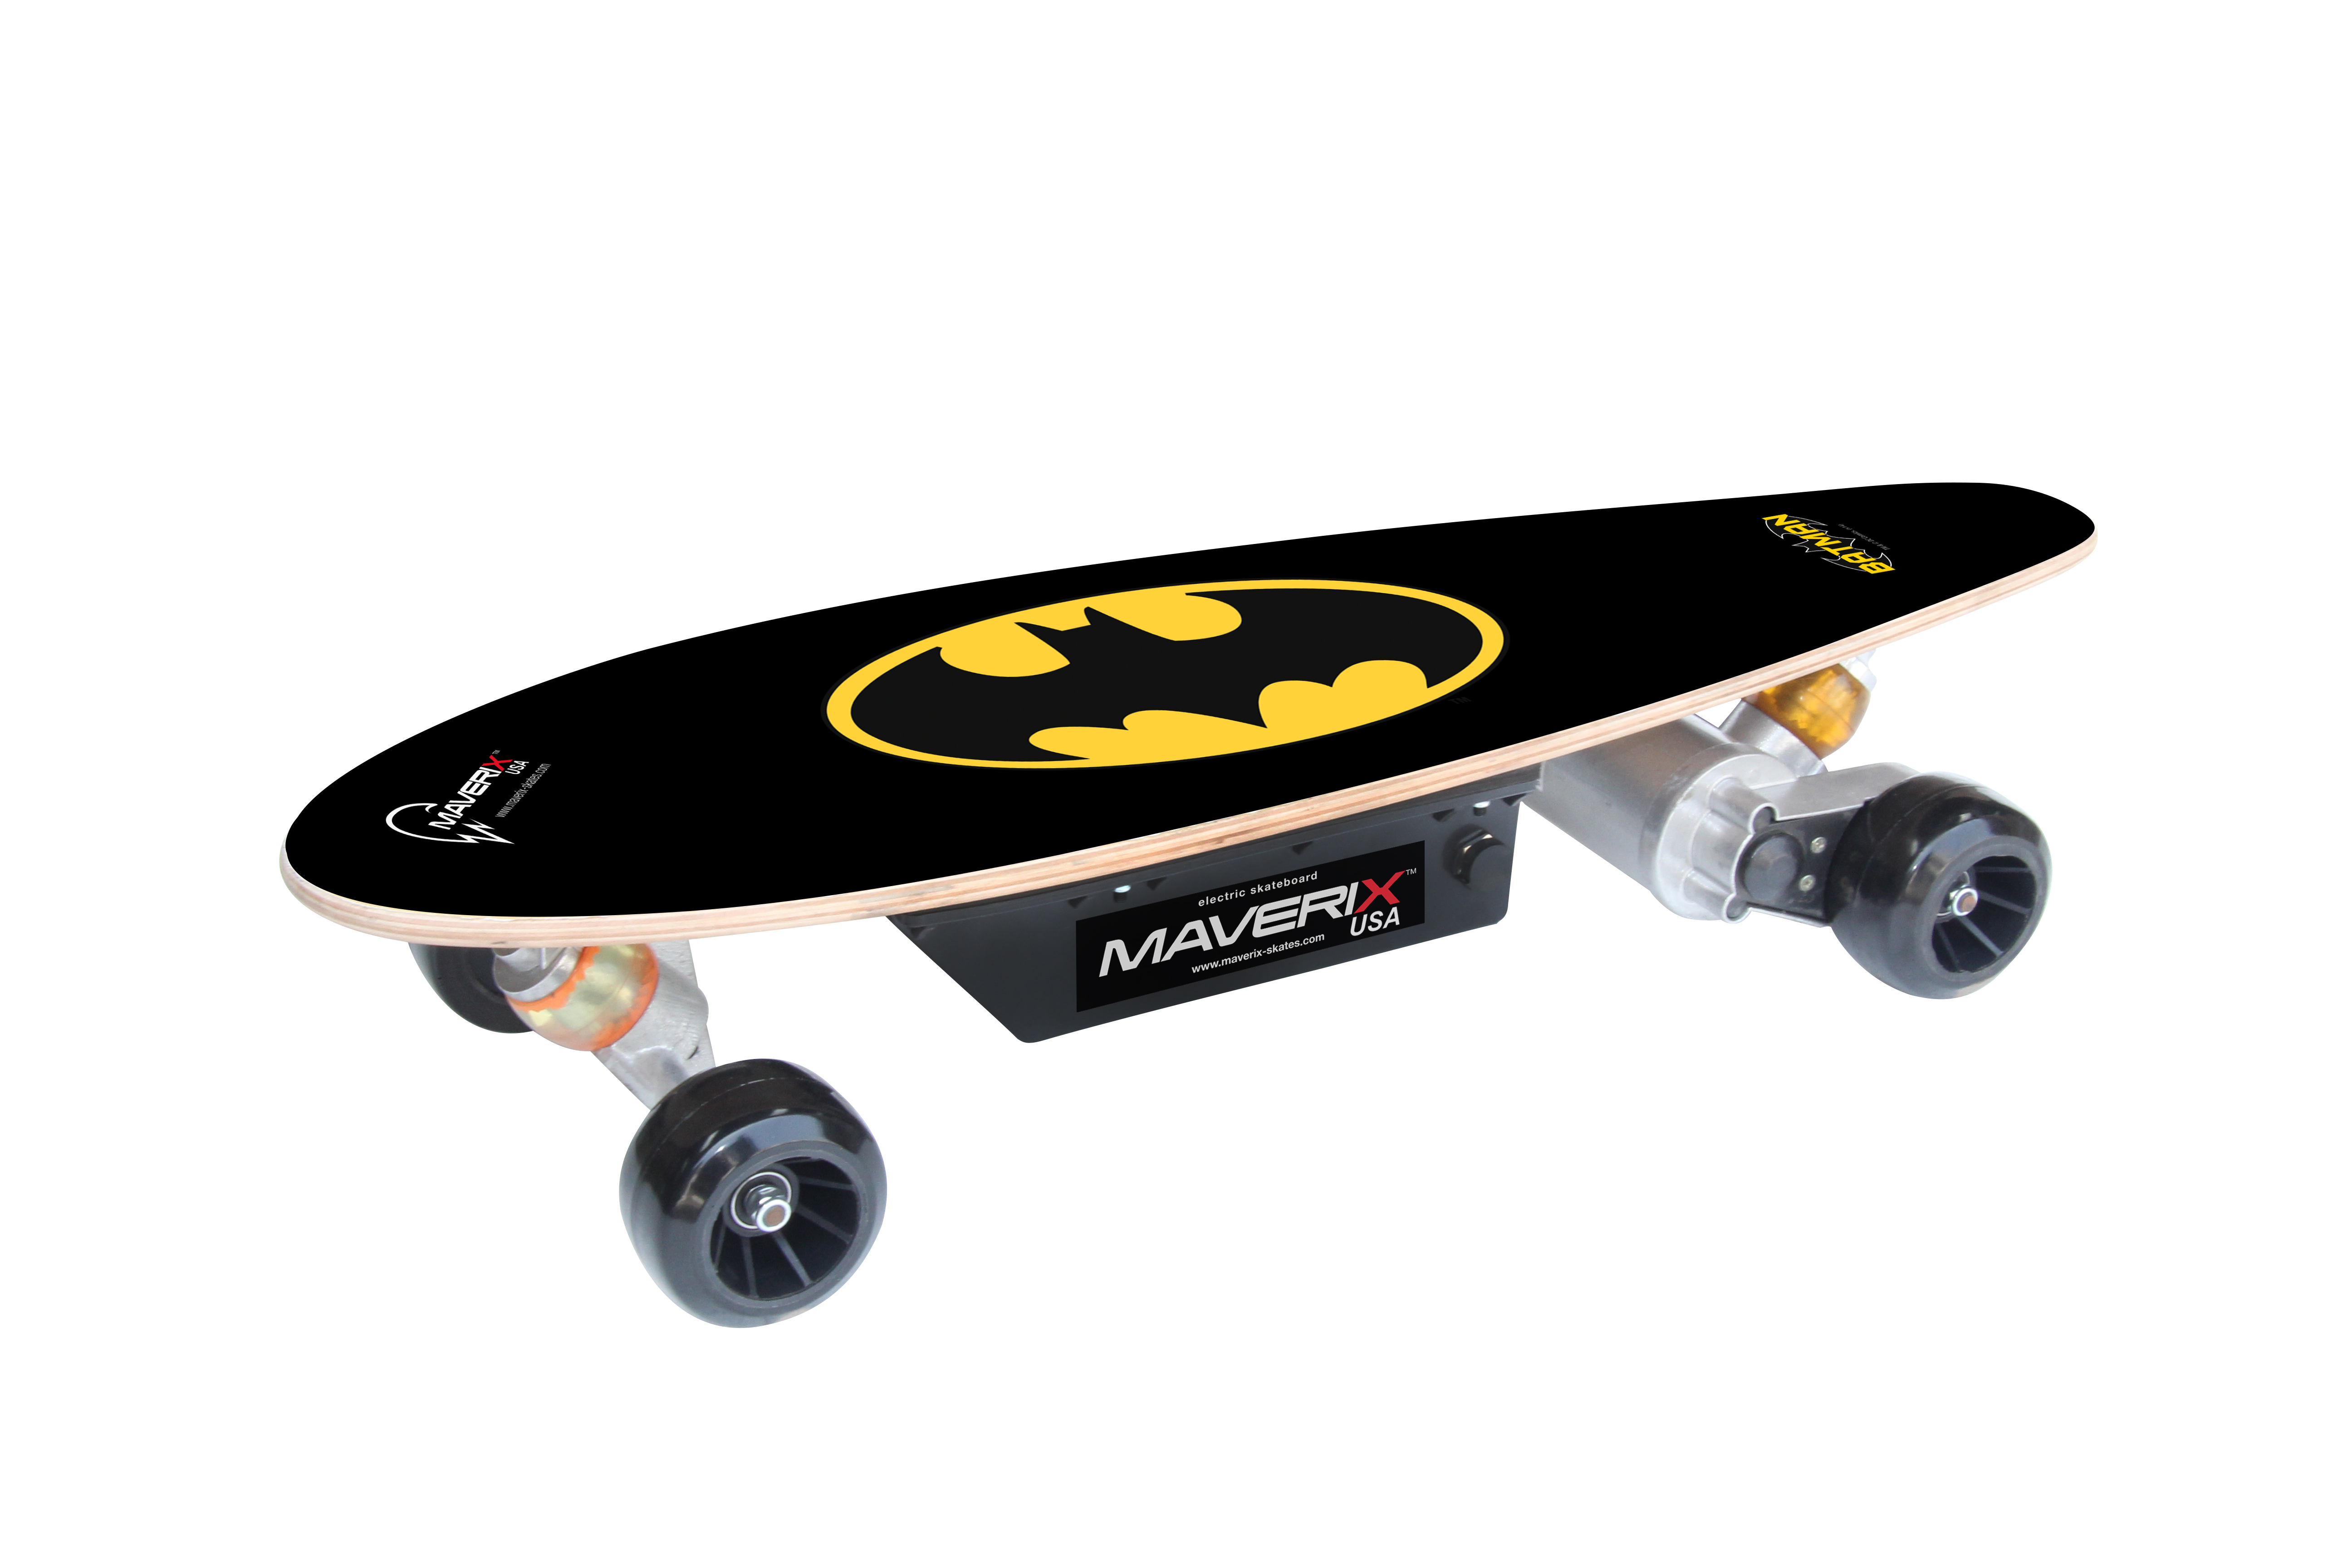 Fantastic Motorized Skateboard Models to Buy in 2020